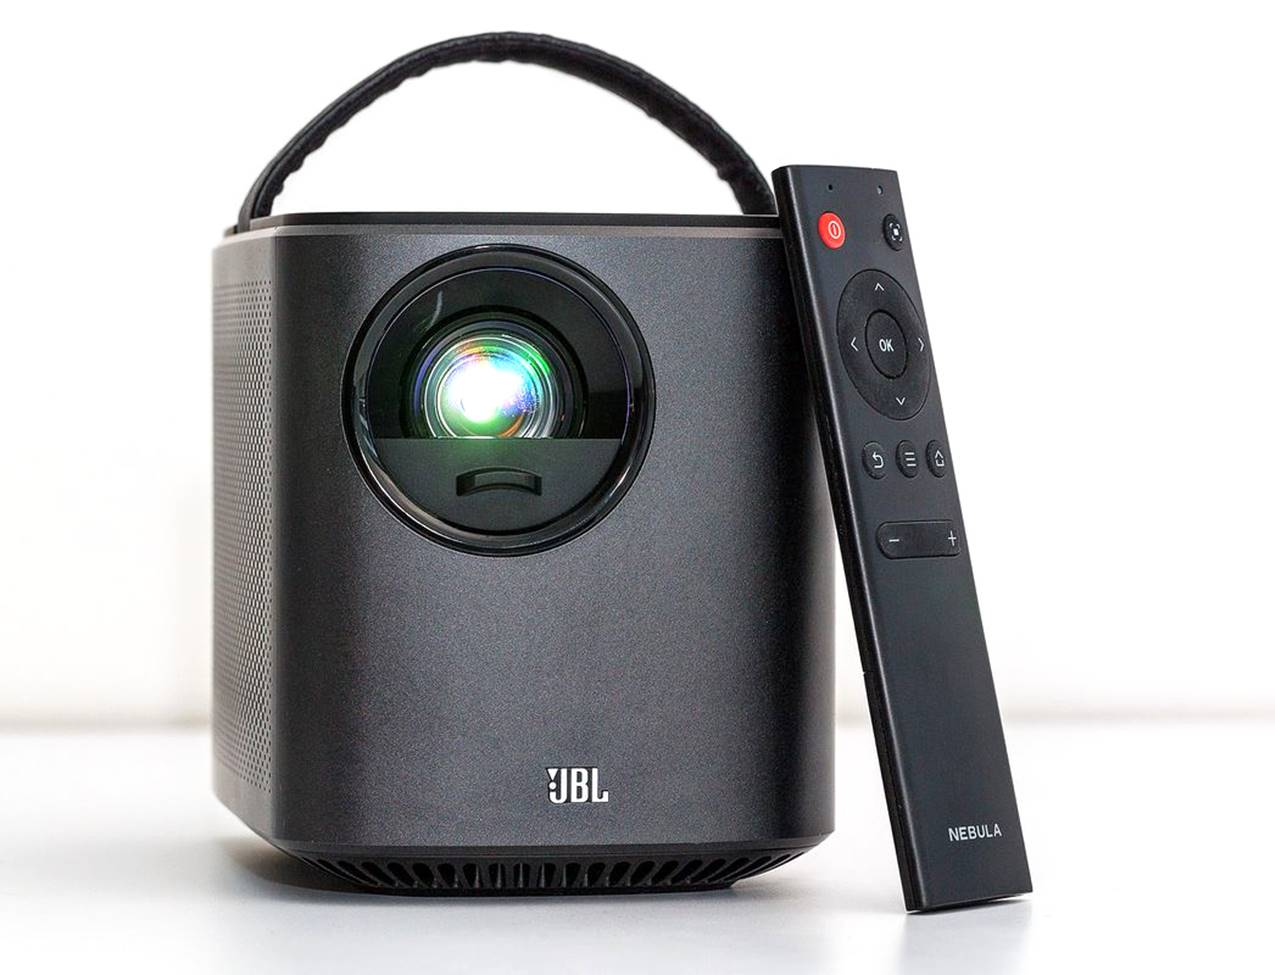 Nebula Mars 4K Projector for Home Theater